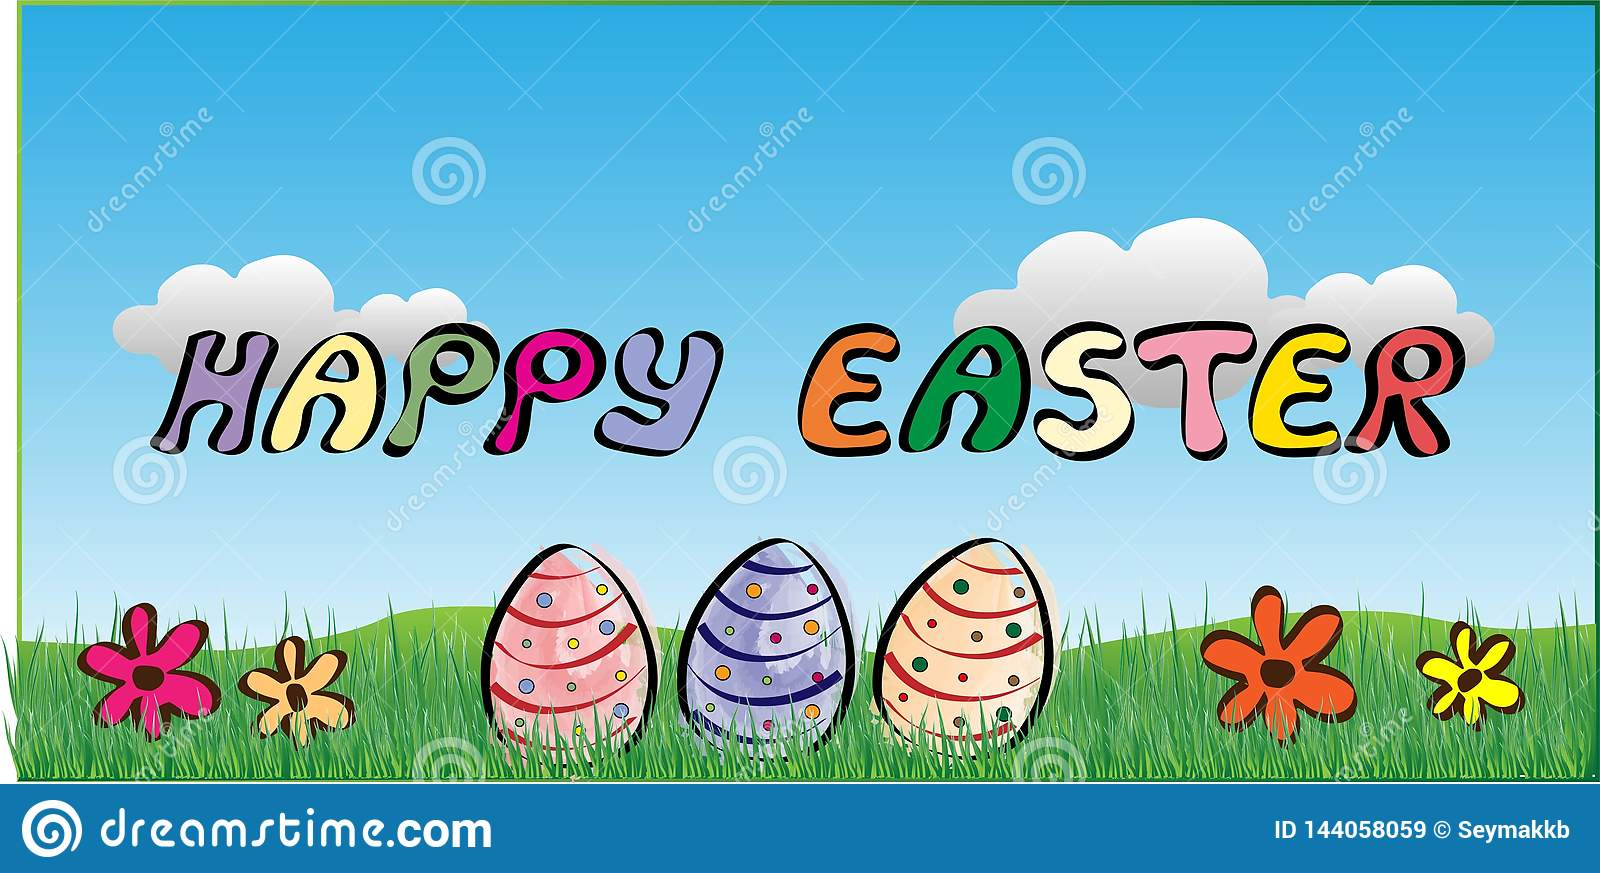 Happy Easter Poster Flowers and Eggs